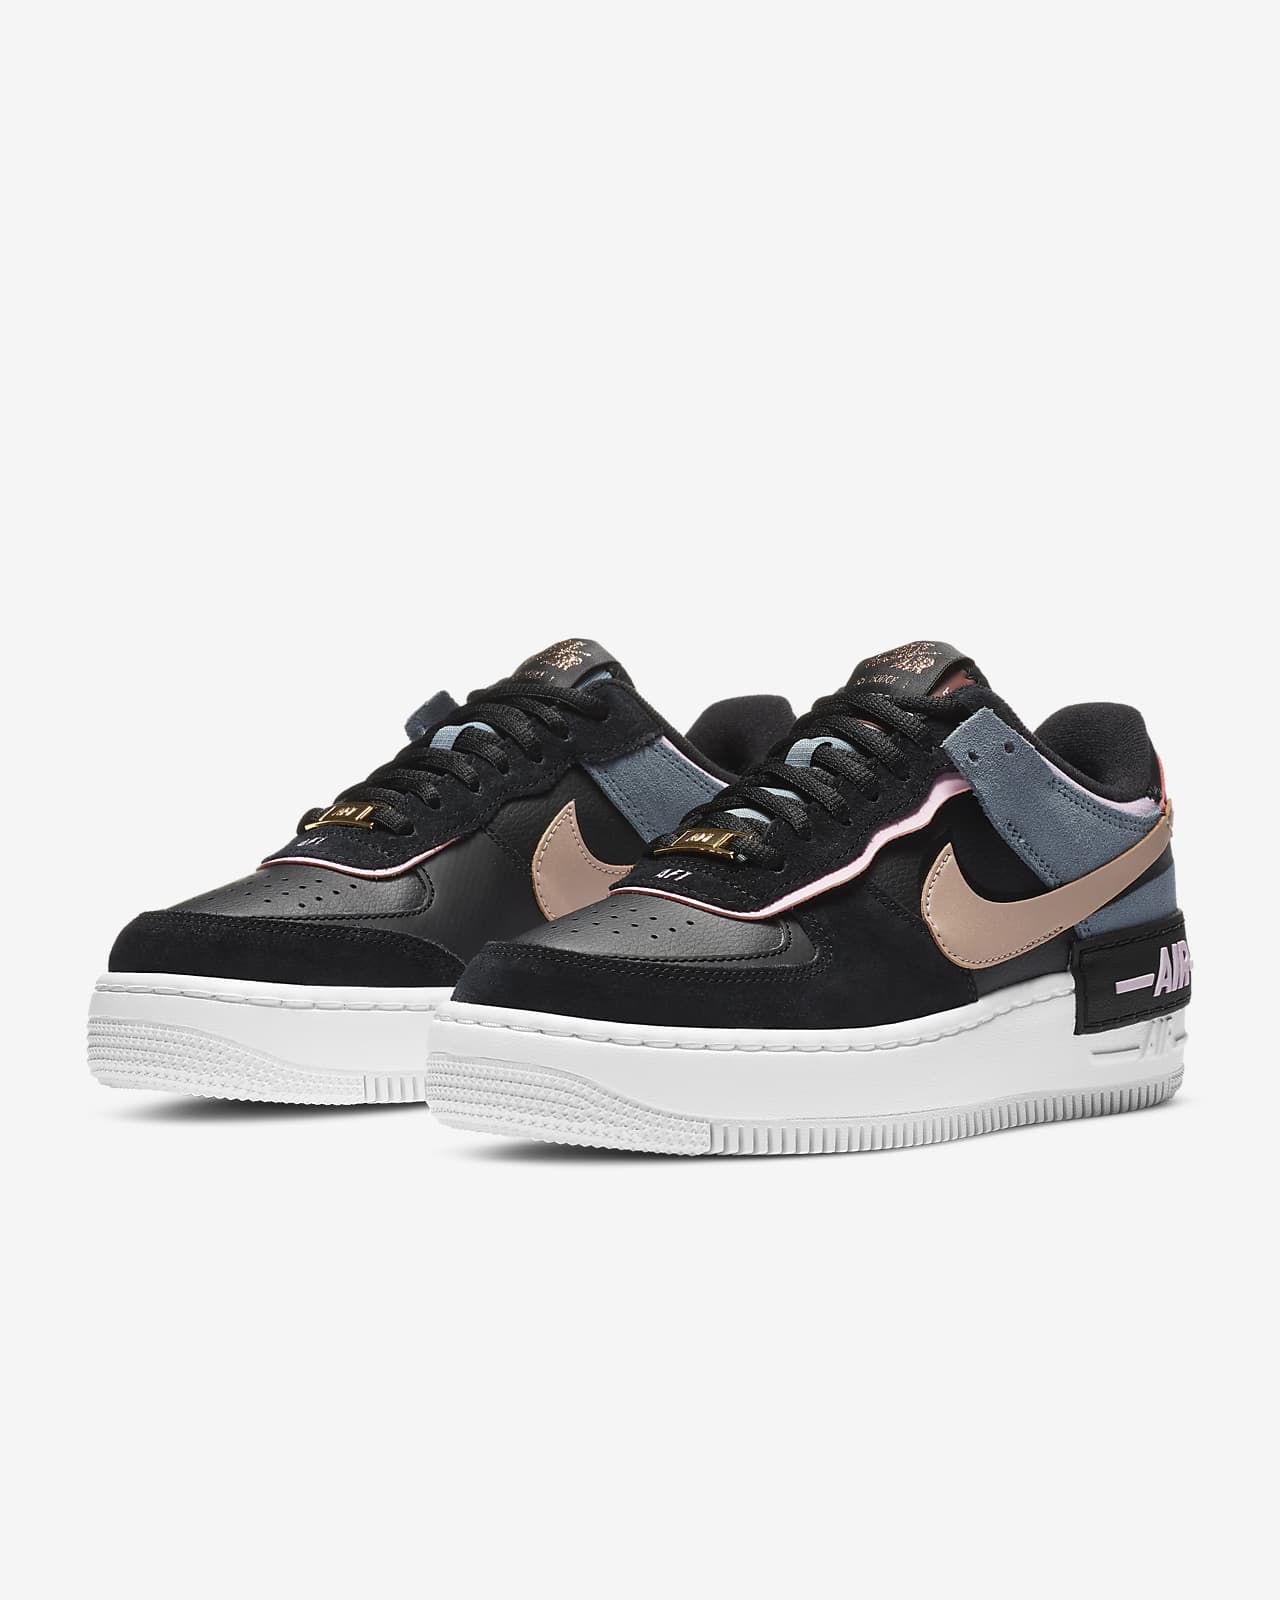 Nike Air Force 1 Shadow Women S Shoe Nike Com Check out our nike air force one selection for the very best in unique or custom, handmade pieces from our shoes shops. nike air force 1 shadow women s shoe